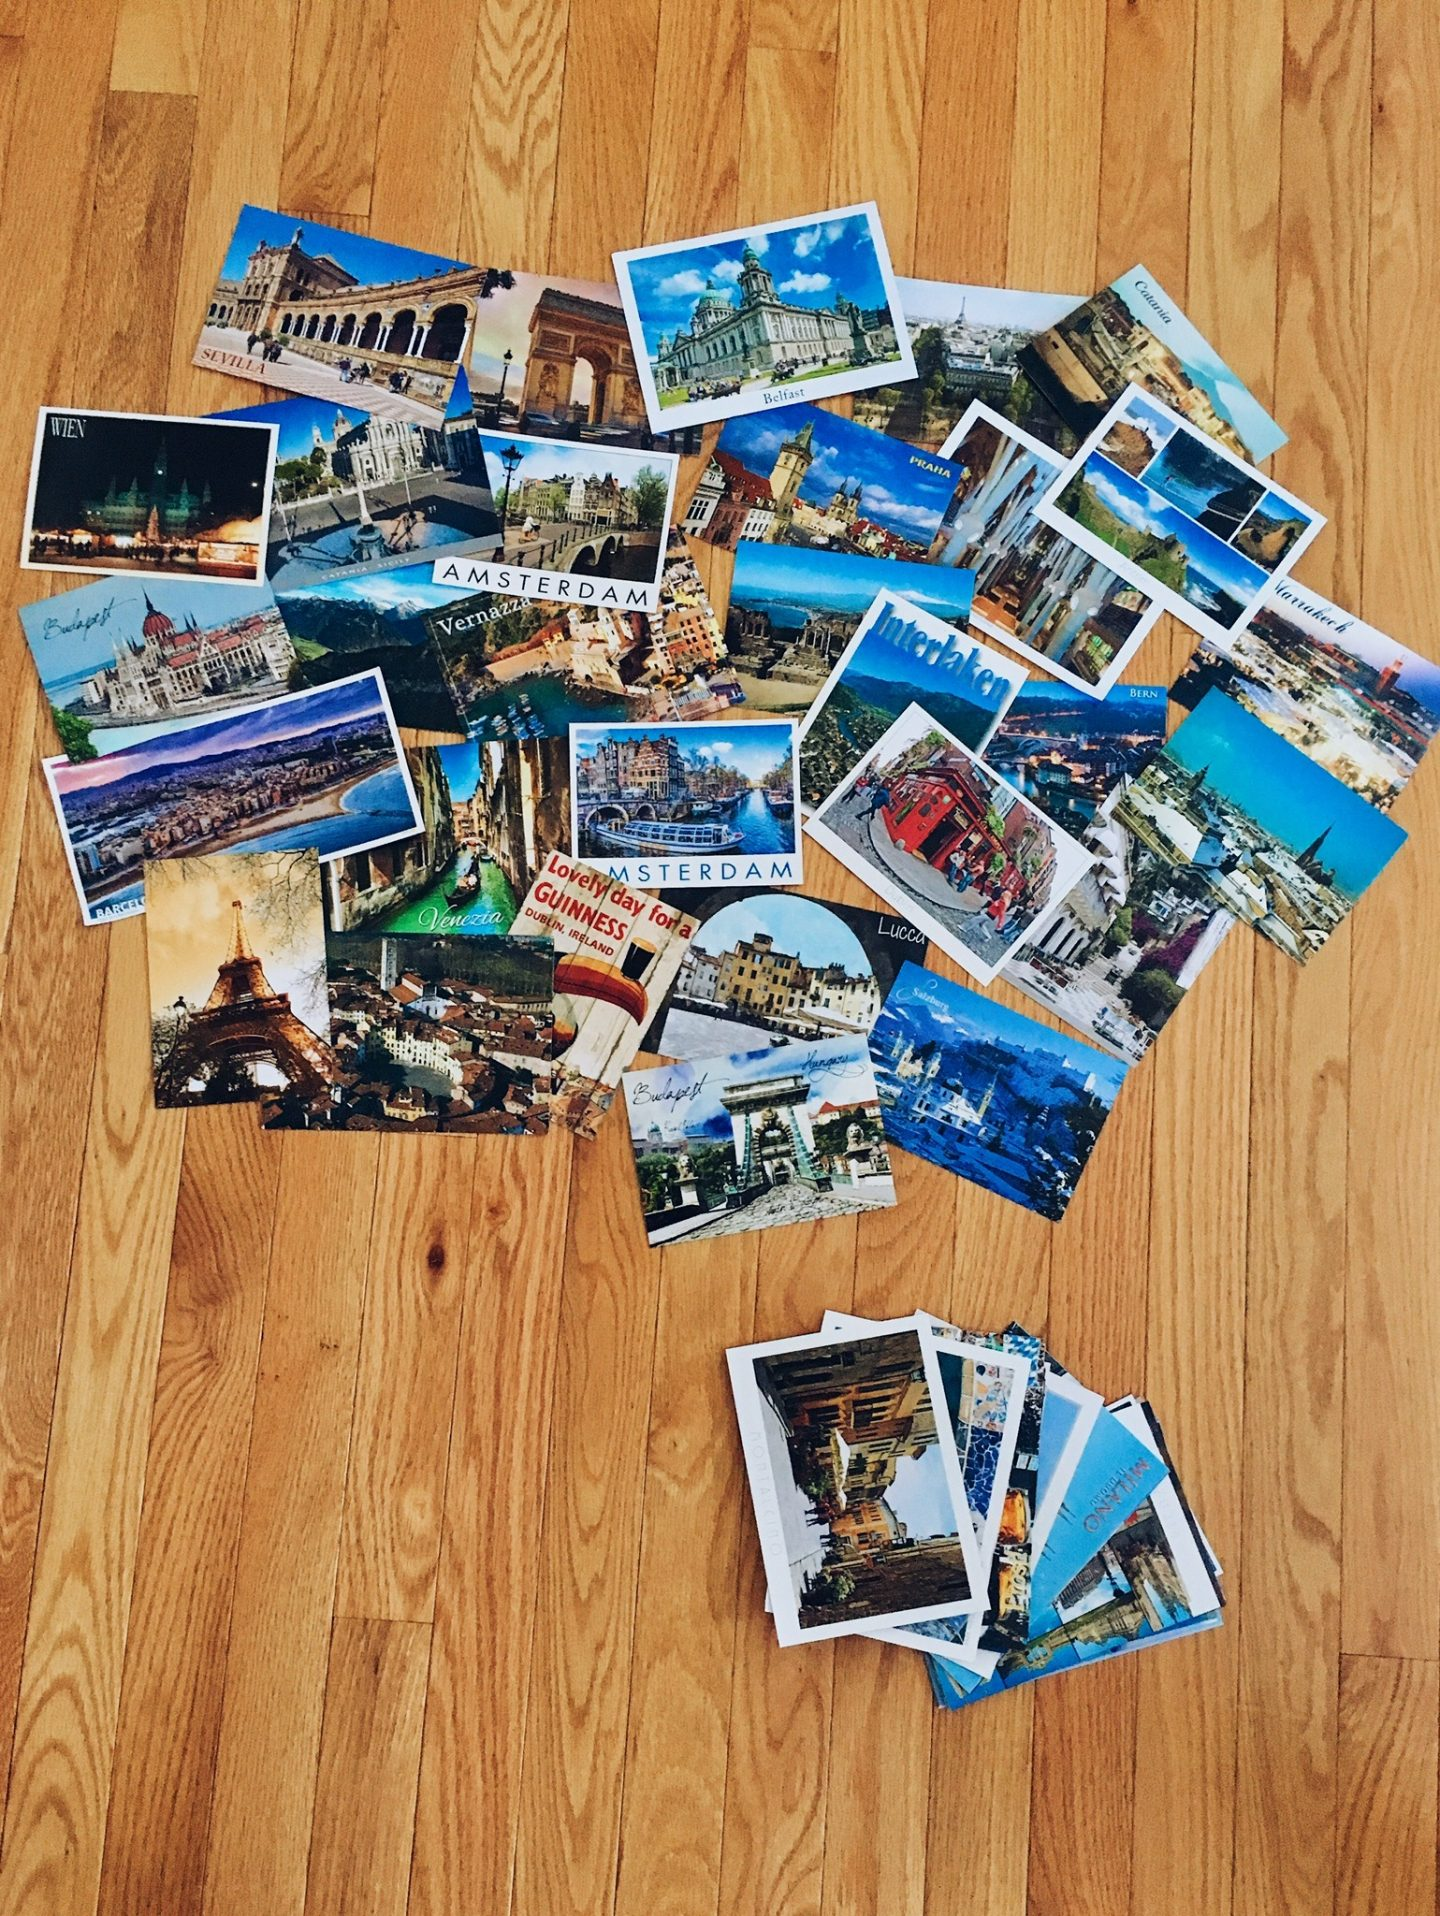 My full postcard collection after studying abroad